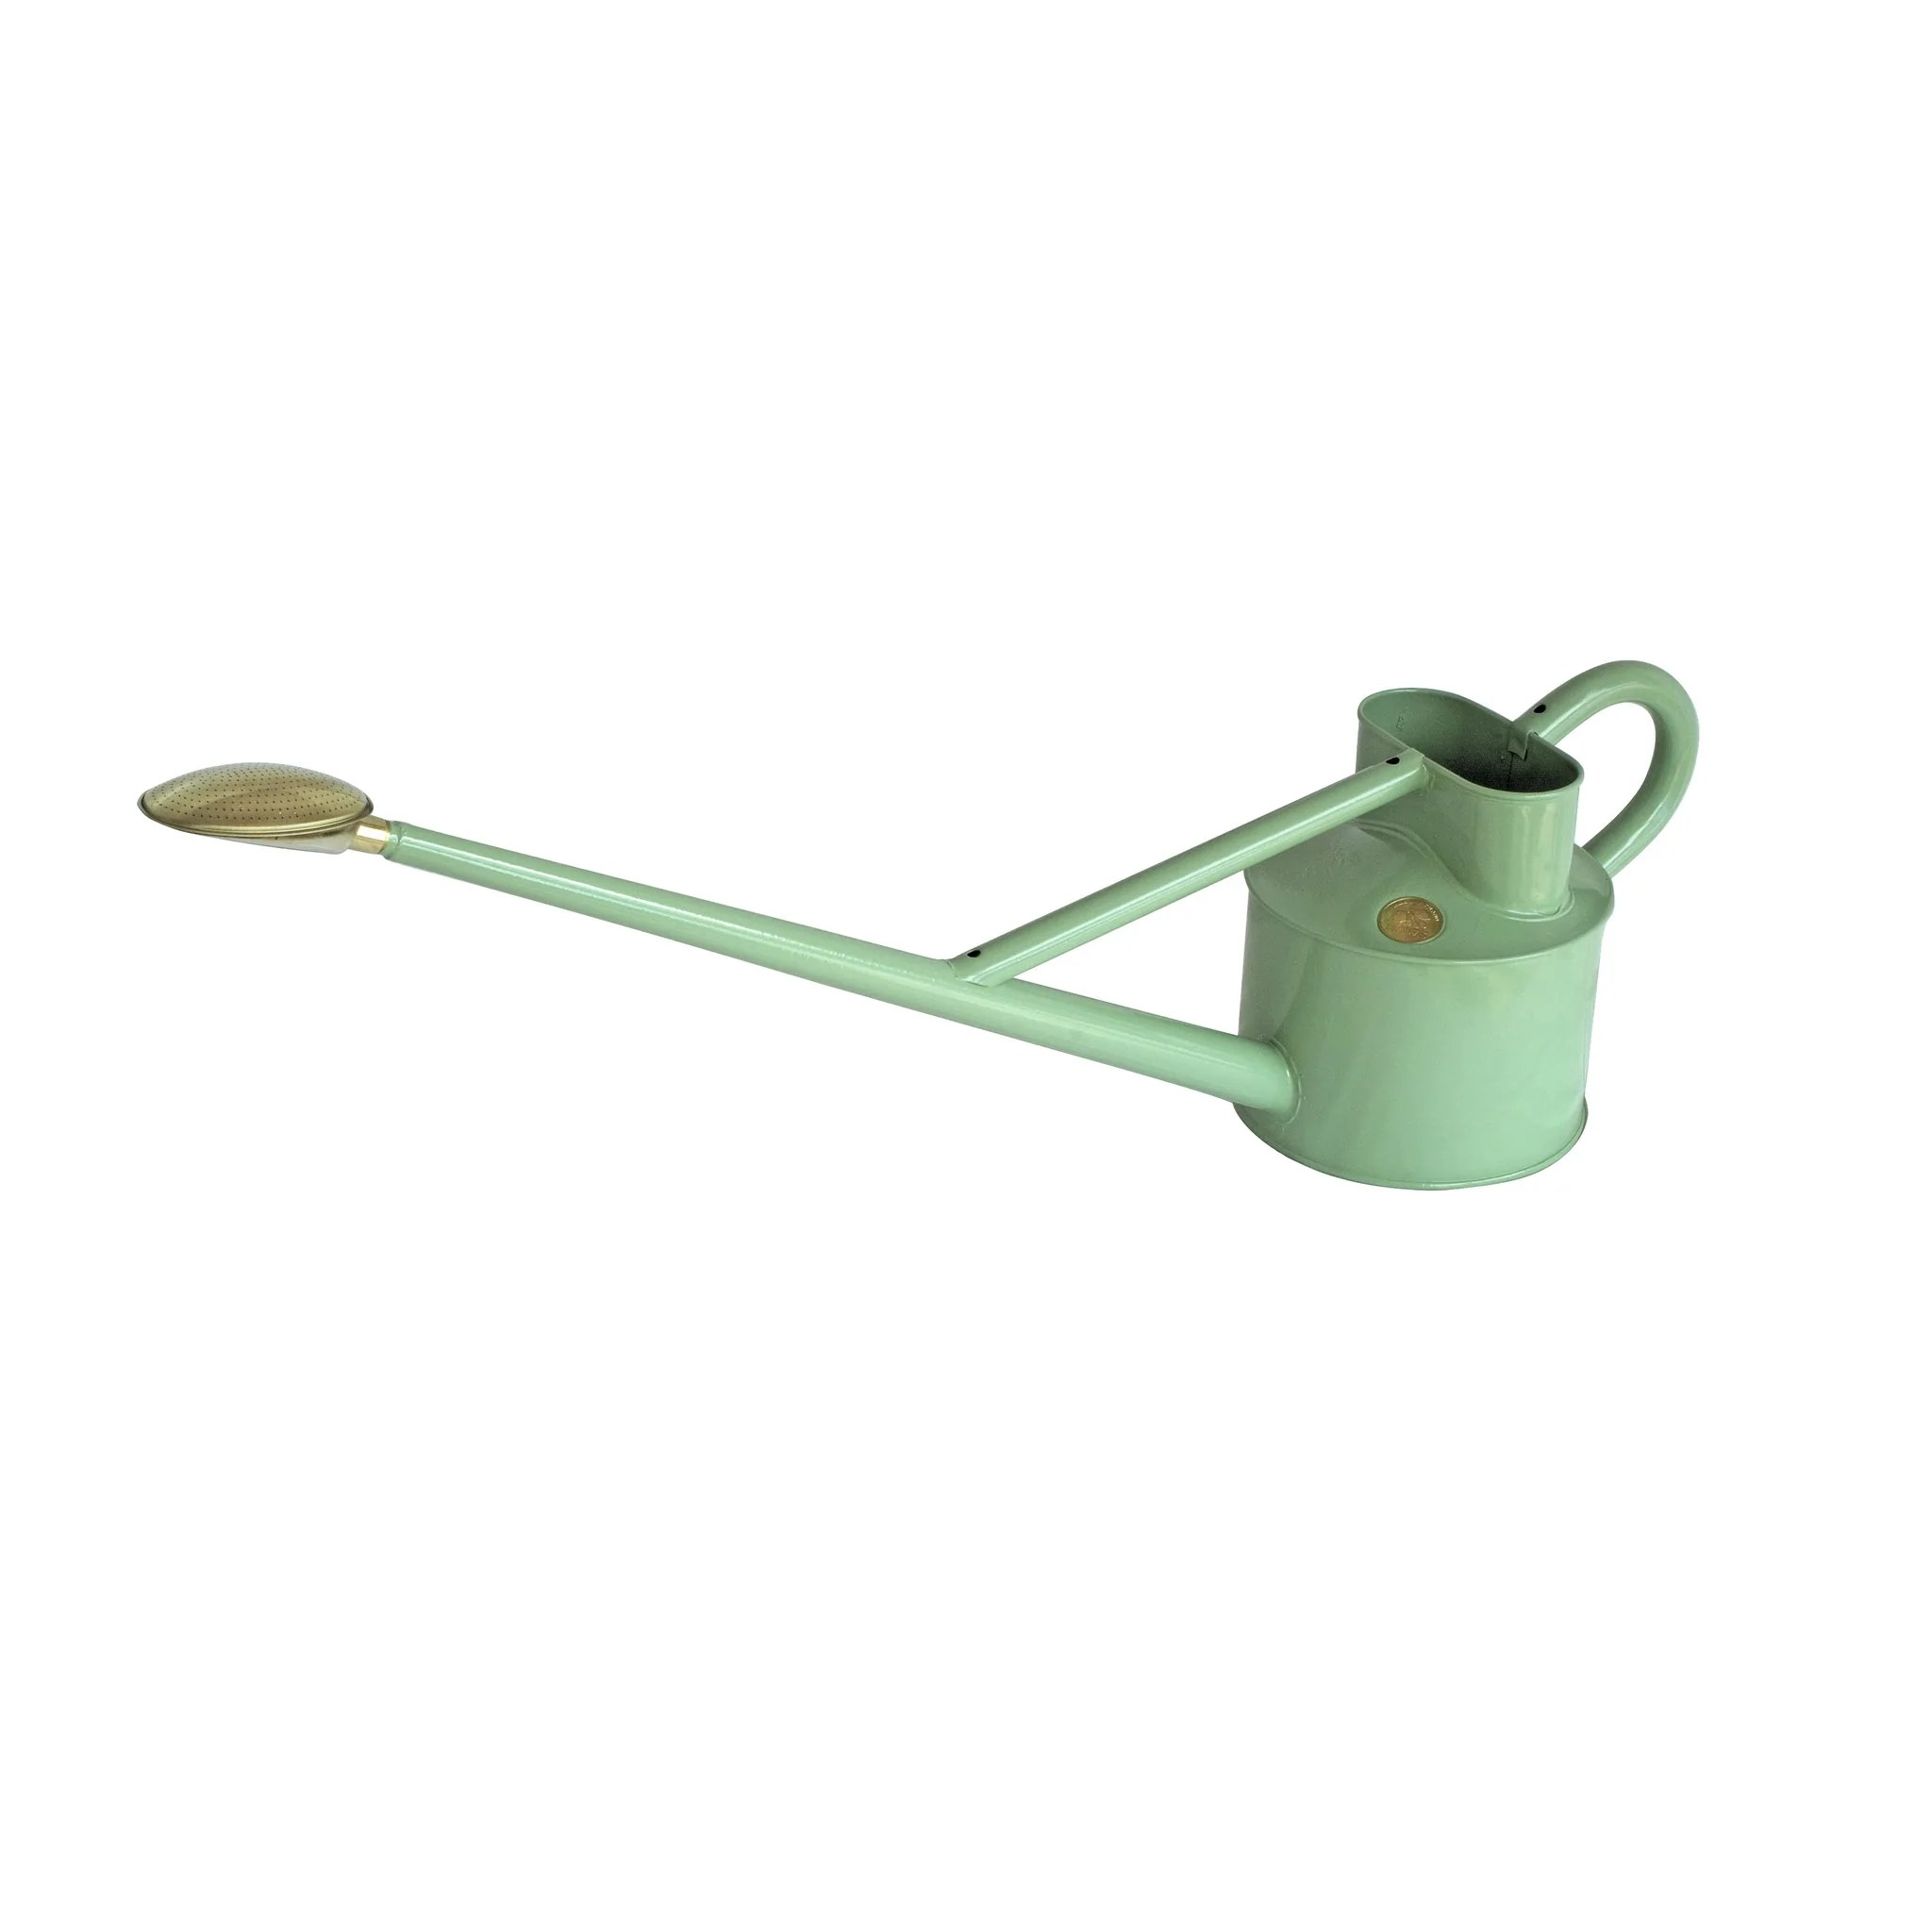 Watering Cans With Long Spouts Haws 4 5 Litre Professional Long Reach Watering Can